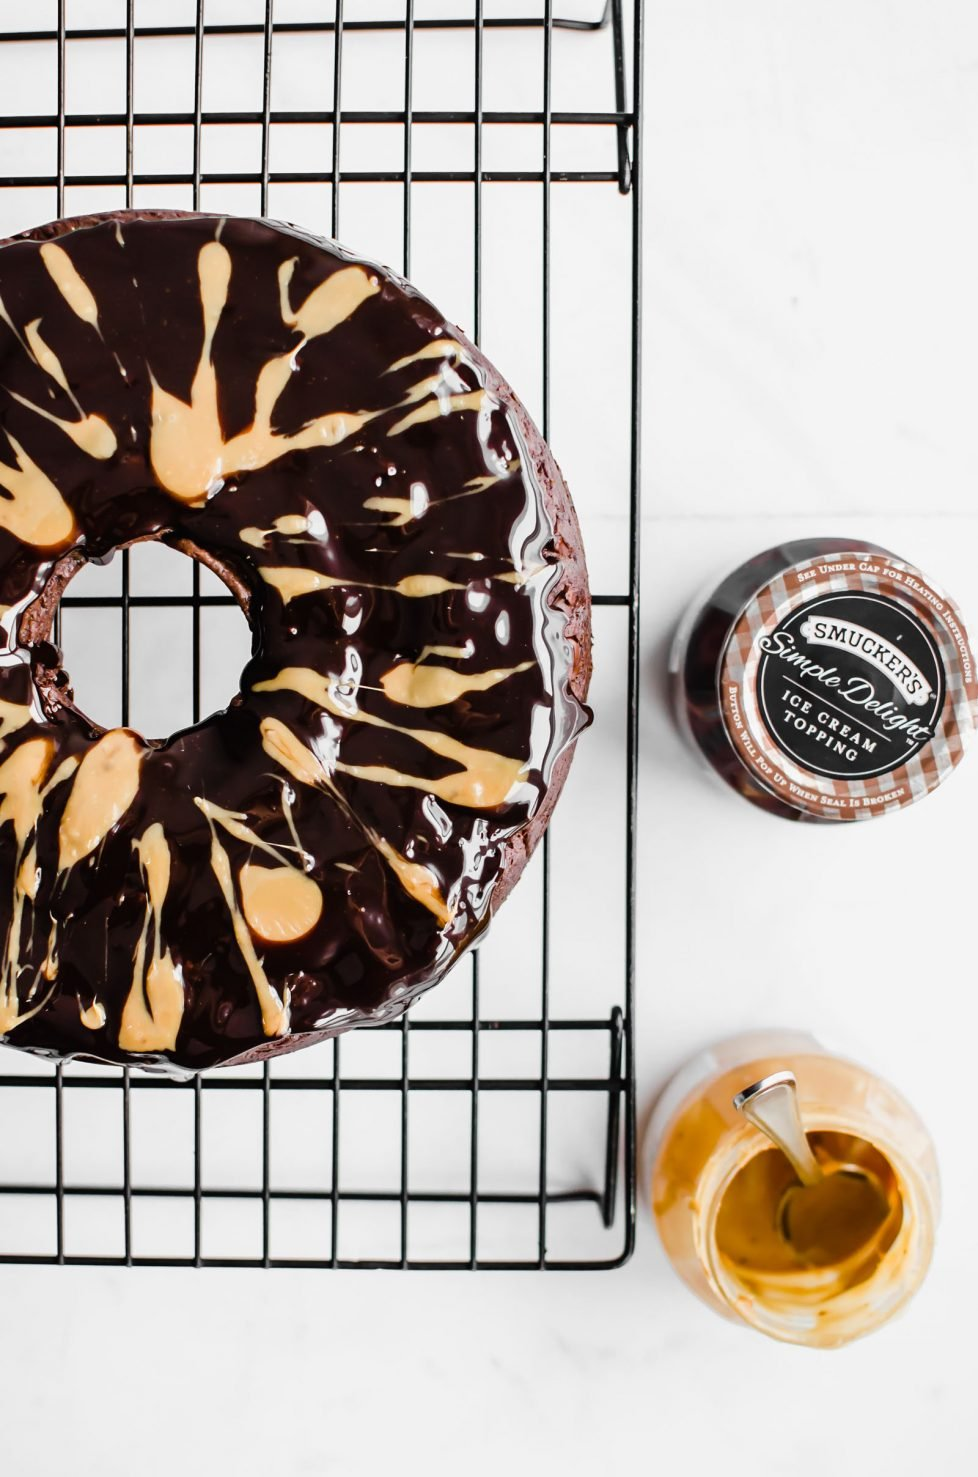 This recipe for Back Pocket Chocolate Fudge Cake is an easy bundt cake that is super moist, fudgy, and extra delicious. It's made with Ghirardelli chocolate, sour cream, and topped with hot fudge and caramel! #valentines #chocolatecake